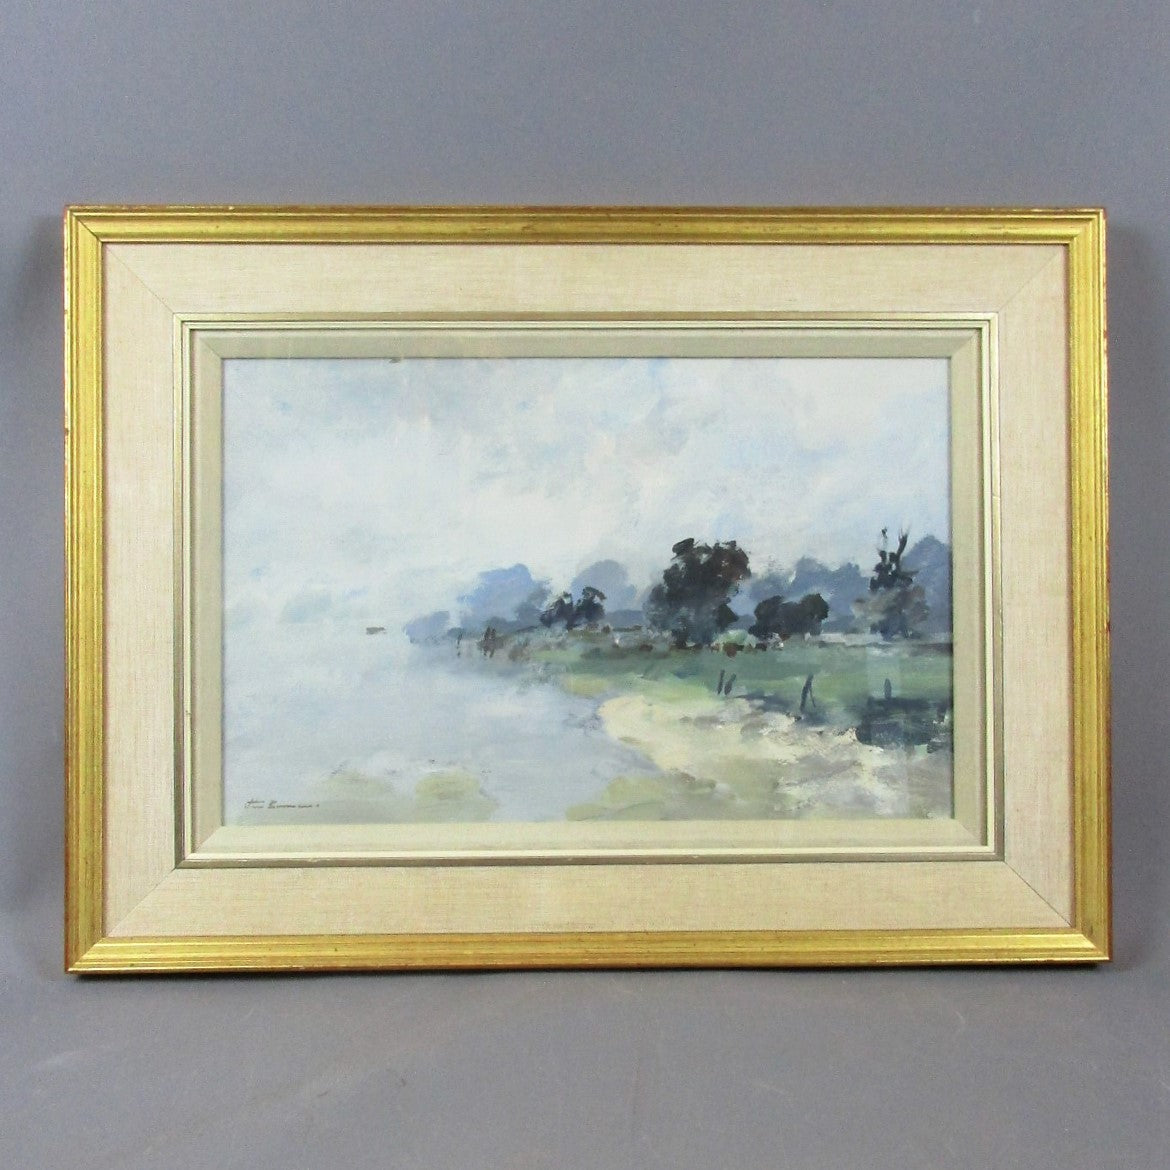 Larger Oil on Board Painting 'Cattle by the River' by J Burman Vintage